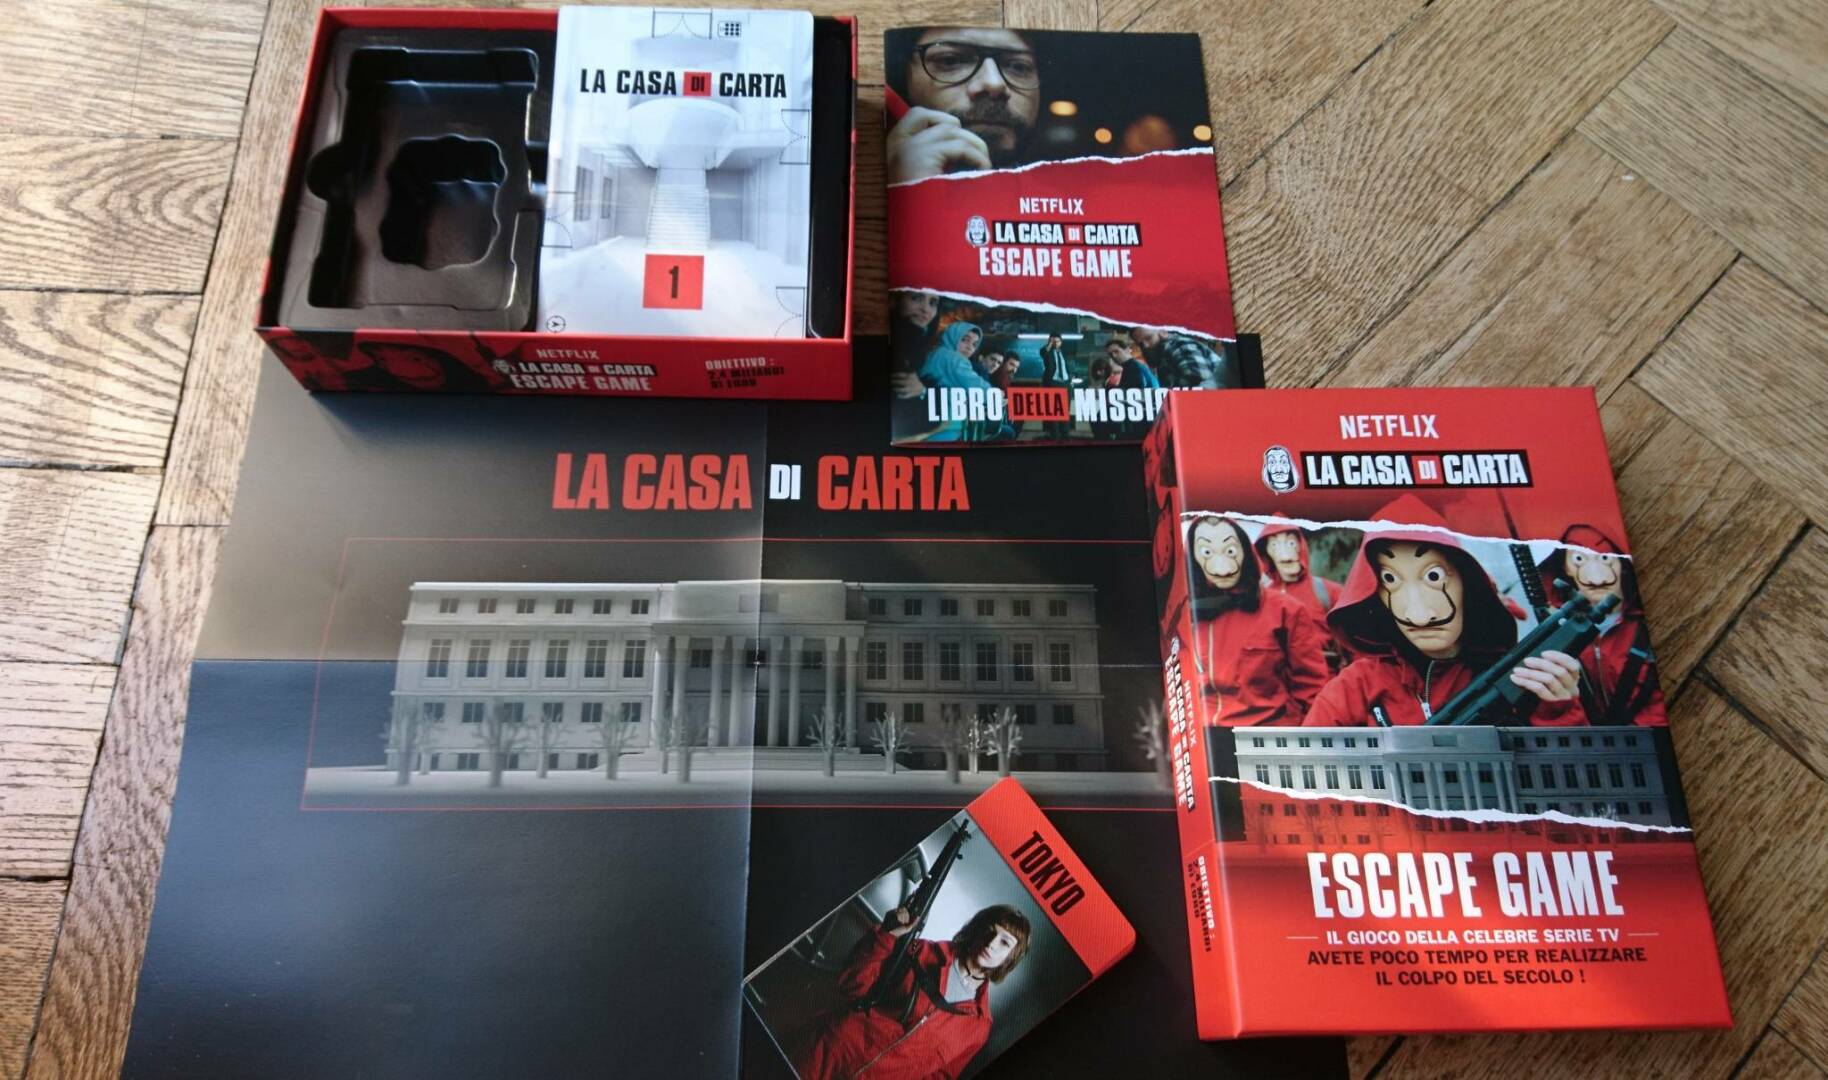 La Casa di Carta – Escape Game: la recensione